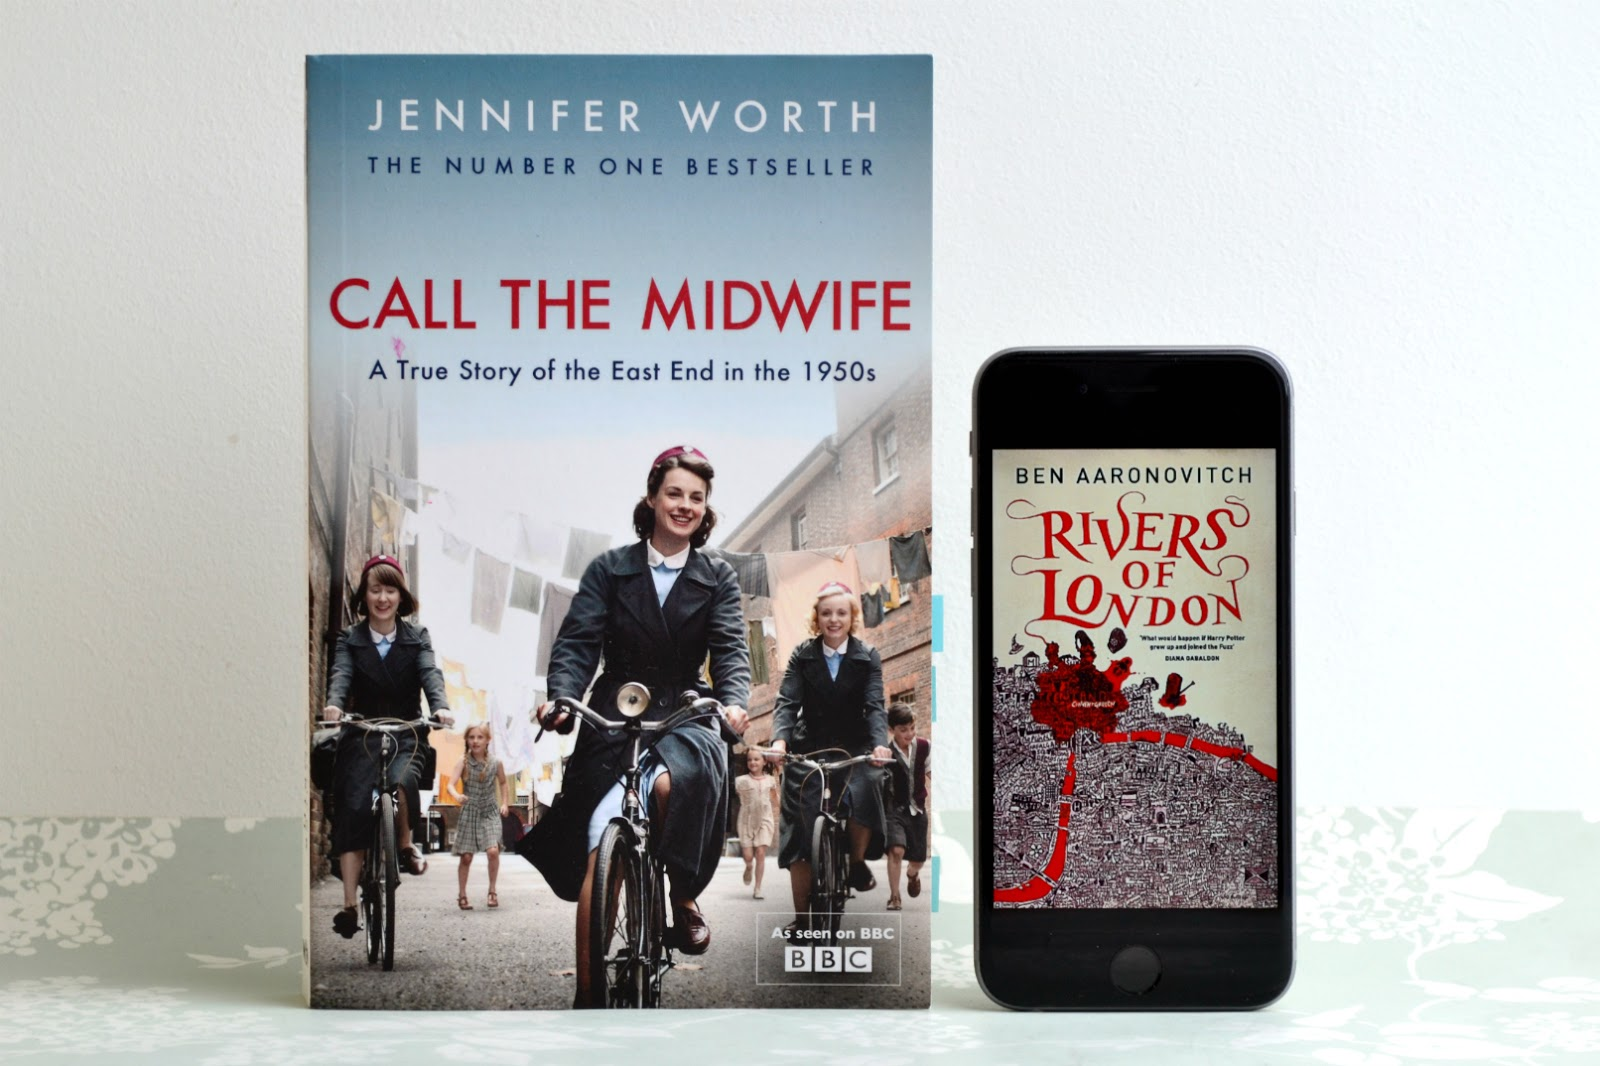 Call the Midwife by Jennifer Worth and Rivers of London by Ben Aaronovitch